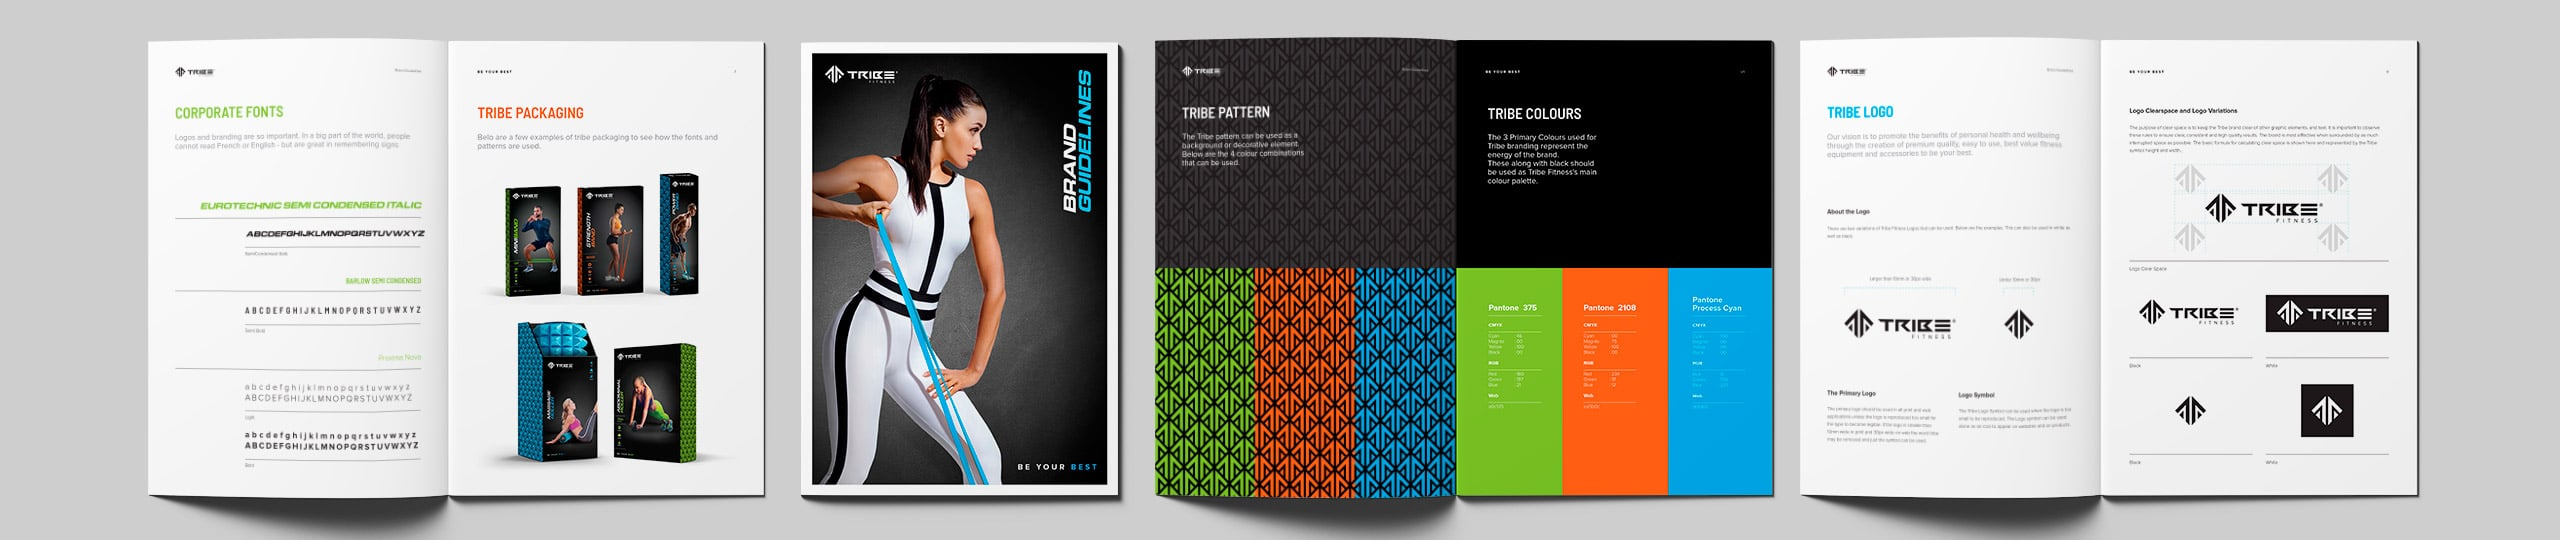 Tribe Fitness Brand Guidelines Brand Strategy Marketing Campaign Brand Design